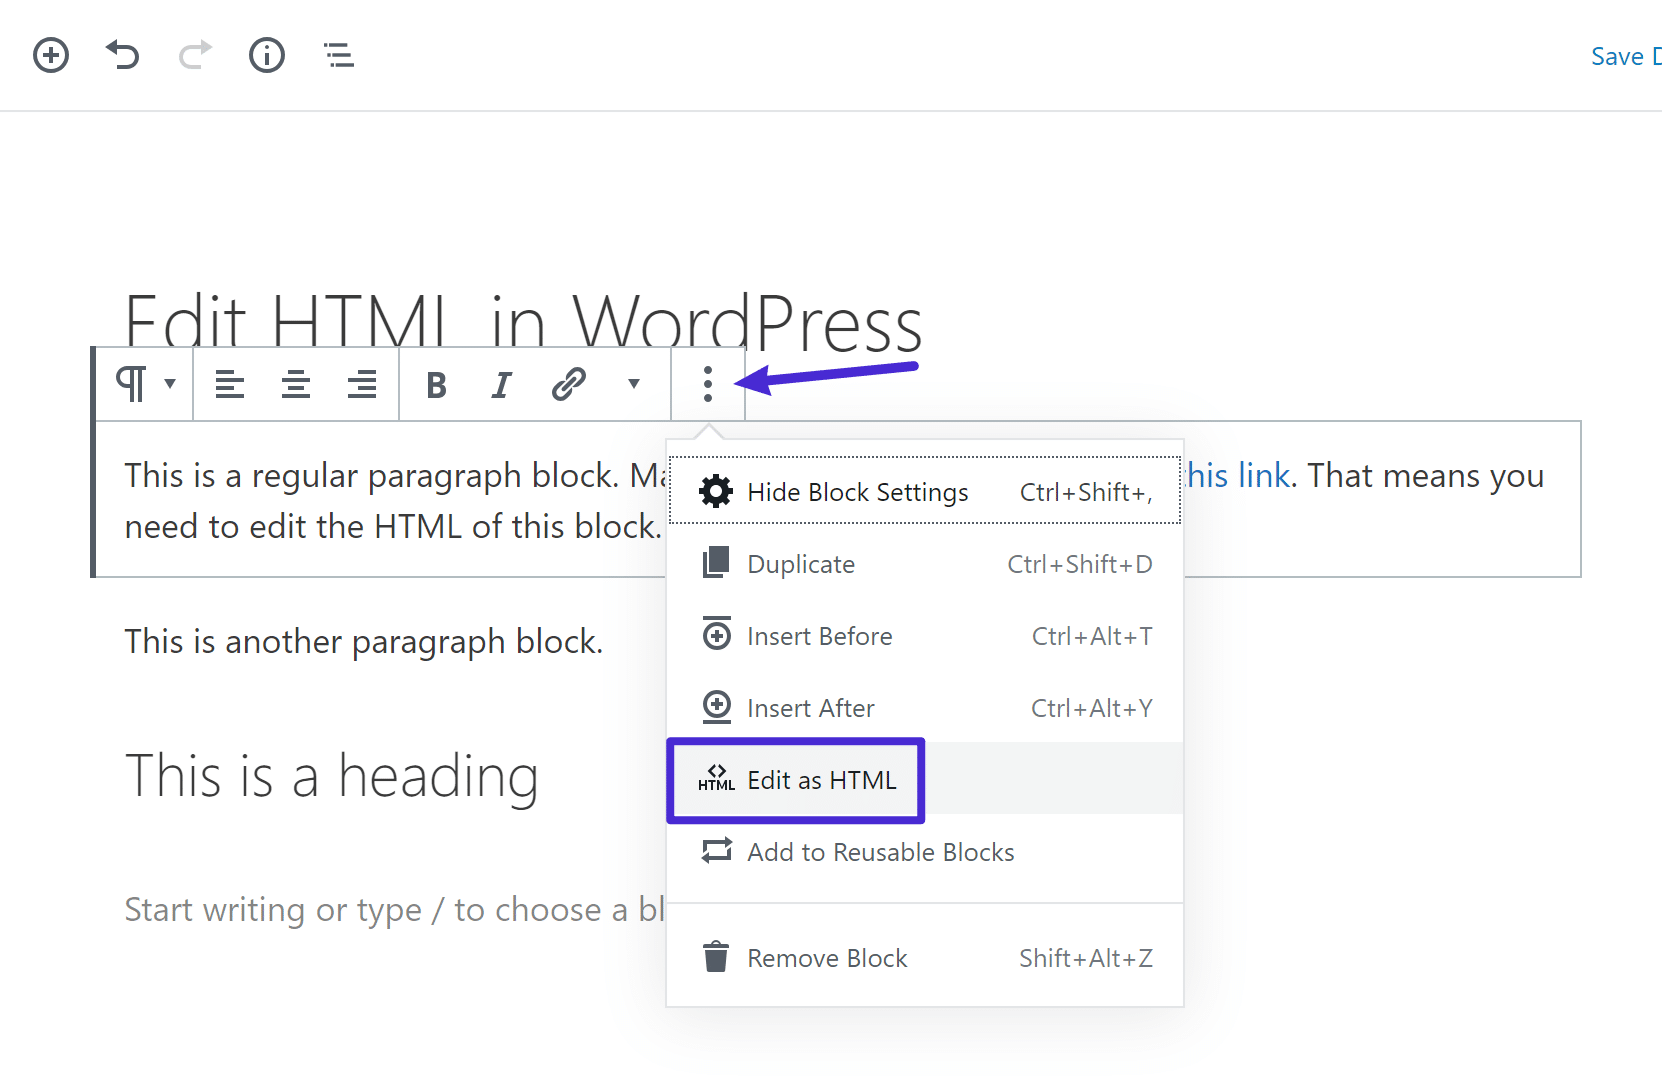 How to edit HTML in WordPress block